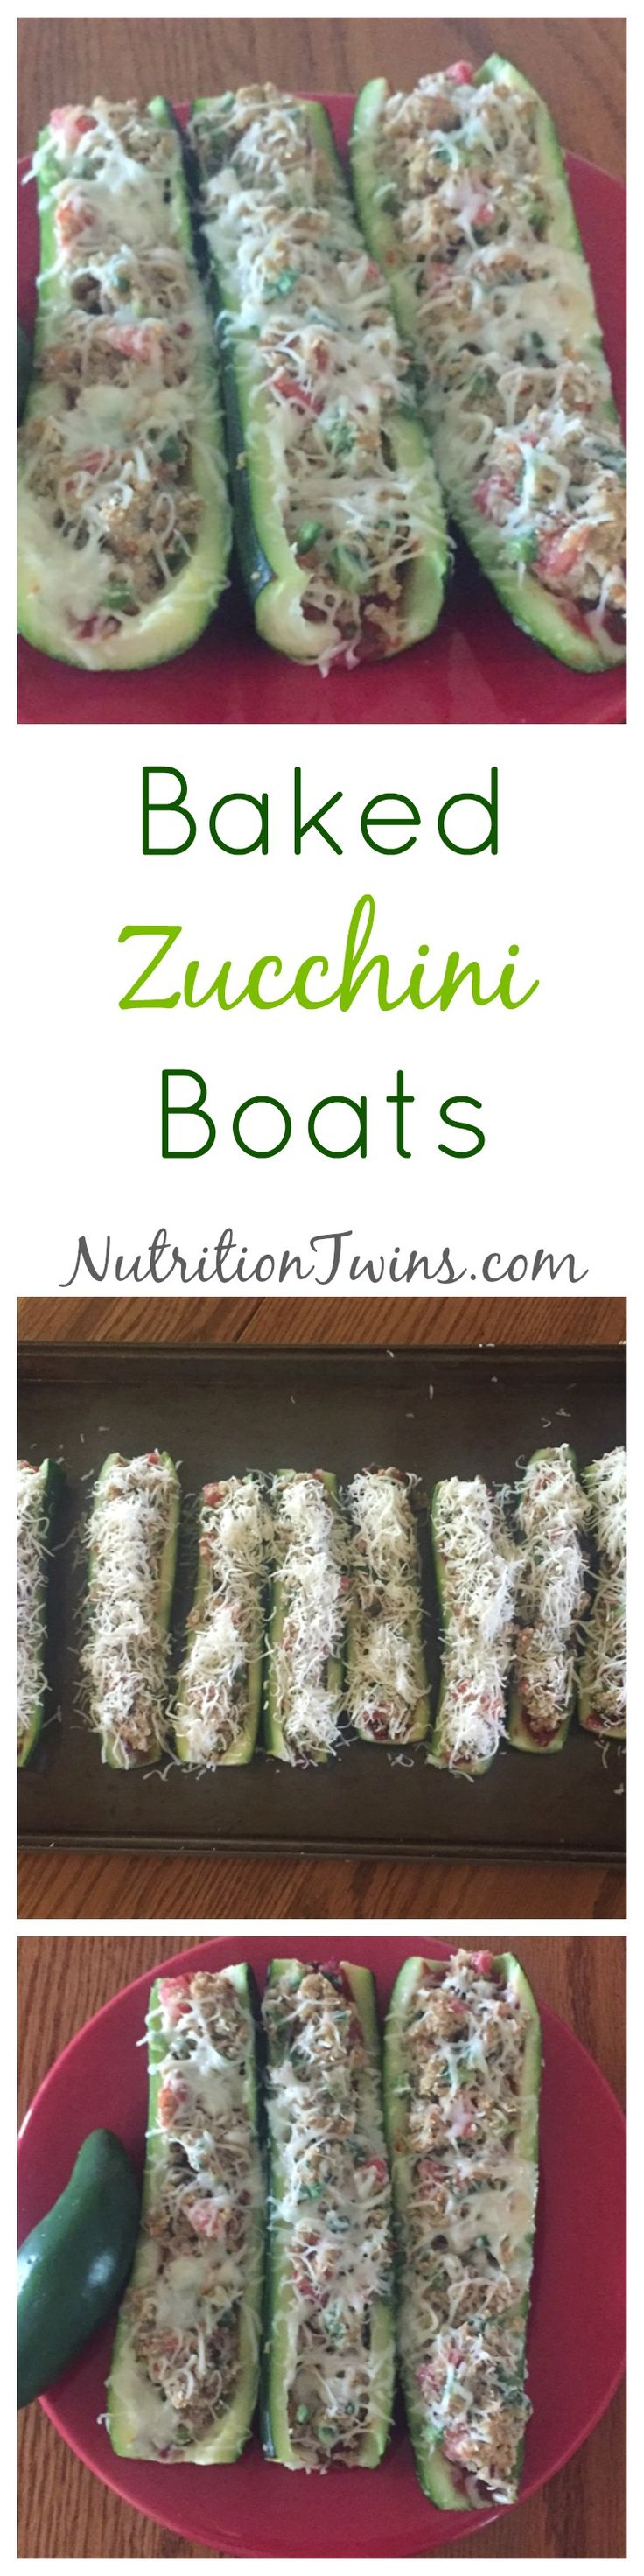 Baked Zucchini Boats | Only 114 Calories | Delicious way to get veggies & protein | Great satisfying appetizer to eat less at the meal | For Nutrition & Fitness Tips & RECIPES please SIGN UP for our FREE NEWSLETTER NutritionTwins.com